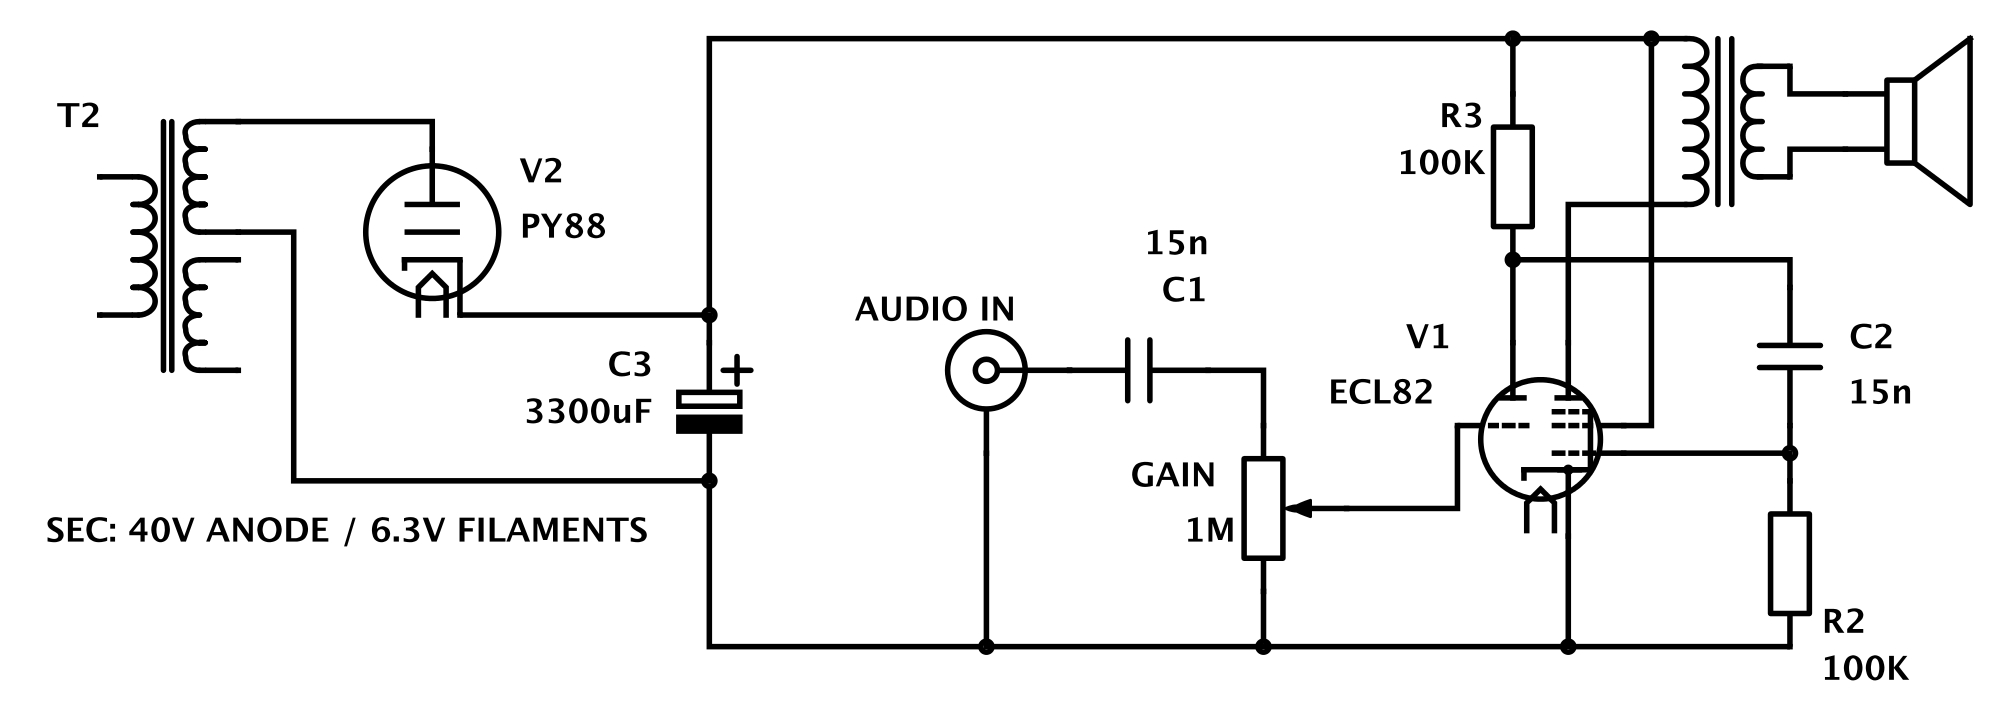 202 furthermore Index as well Mono    ponent Kemo M031N 5 Vdc 6 Vdc 9 Vdc 12 Vdc 35 W additionally Instrumentation   From Op  s Fine For Ekg further 25j87w. on amplifier modules